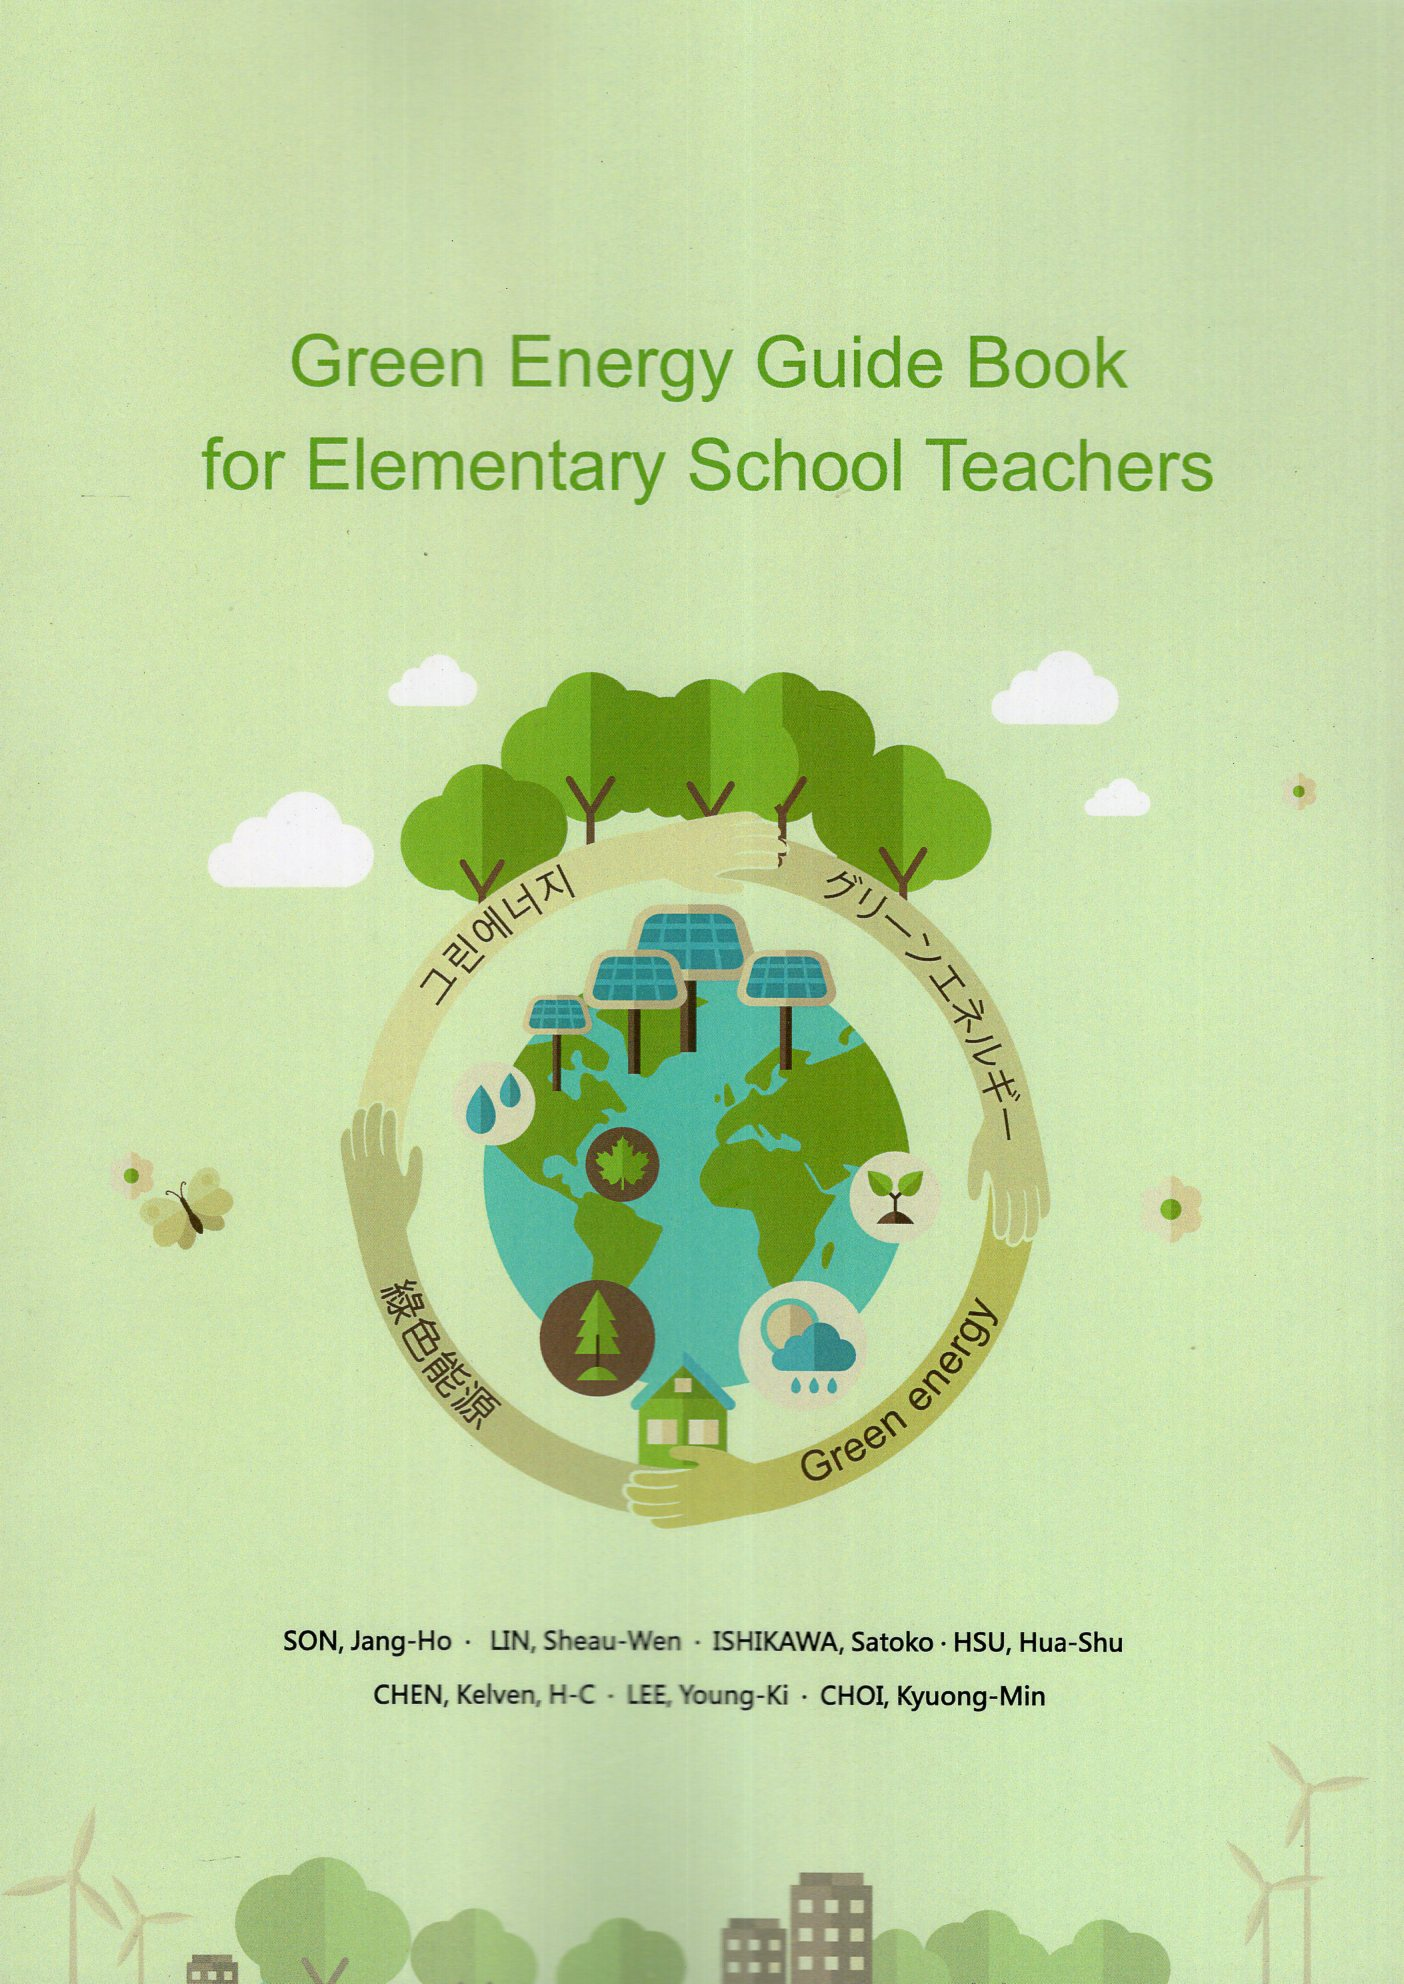 Green Energy Guide